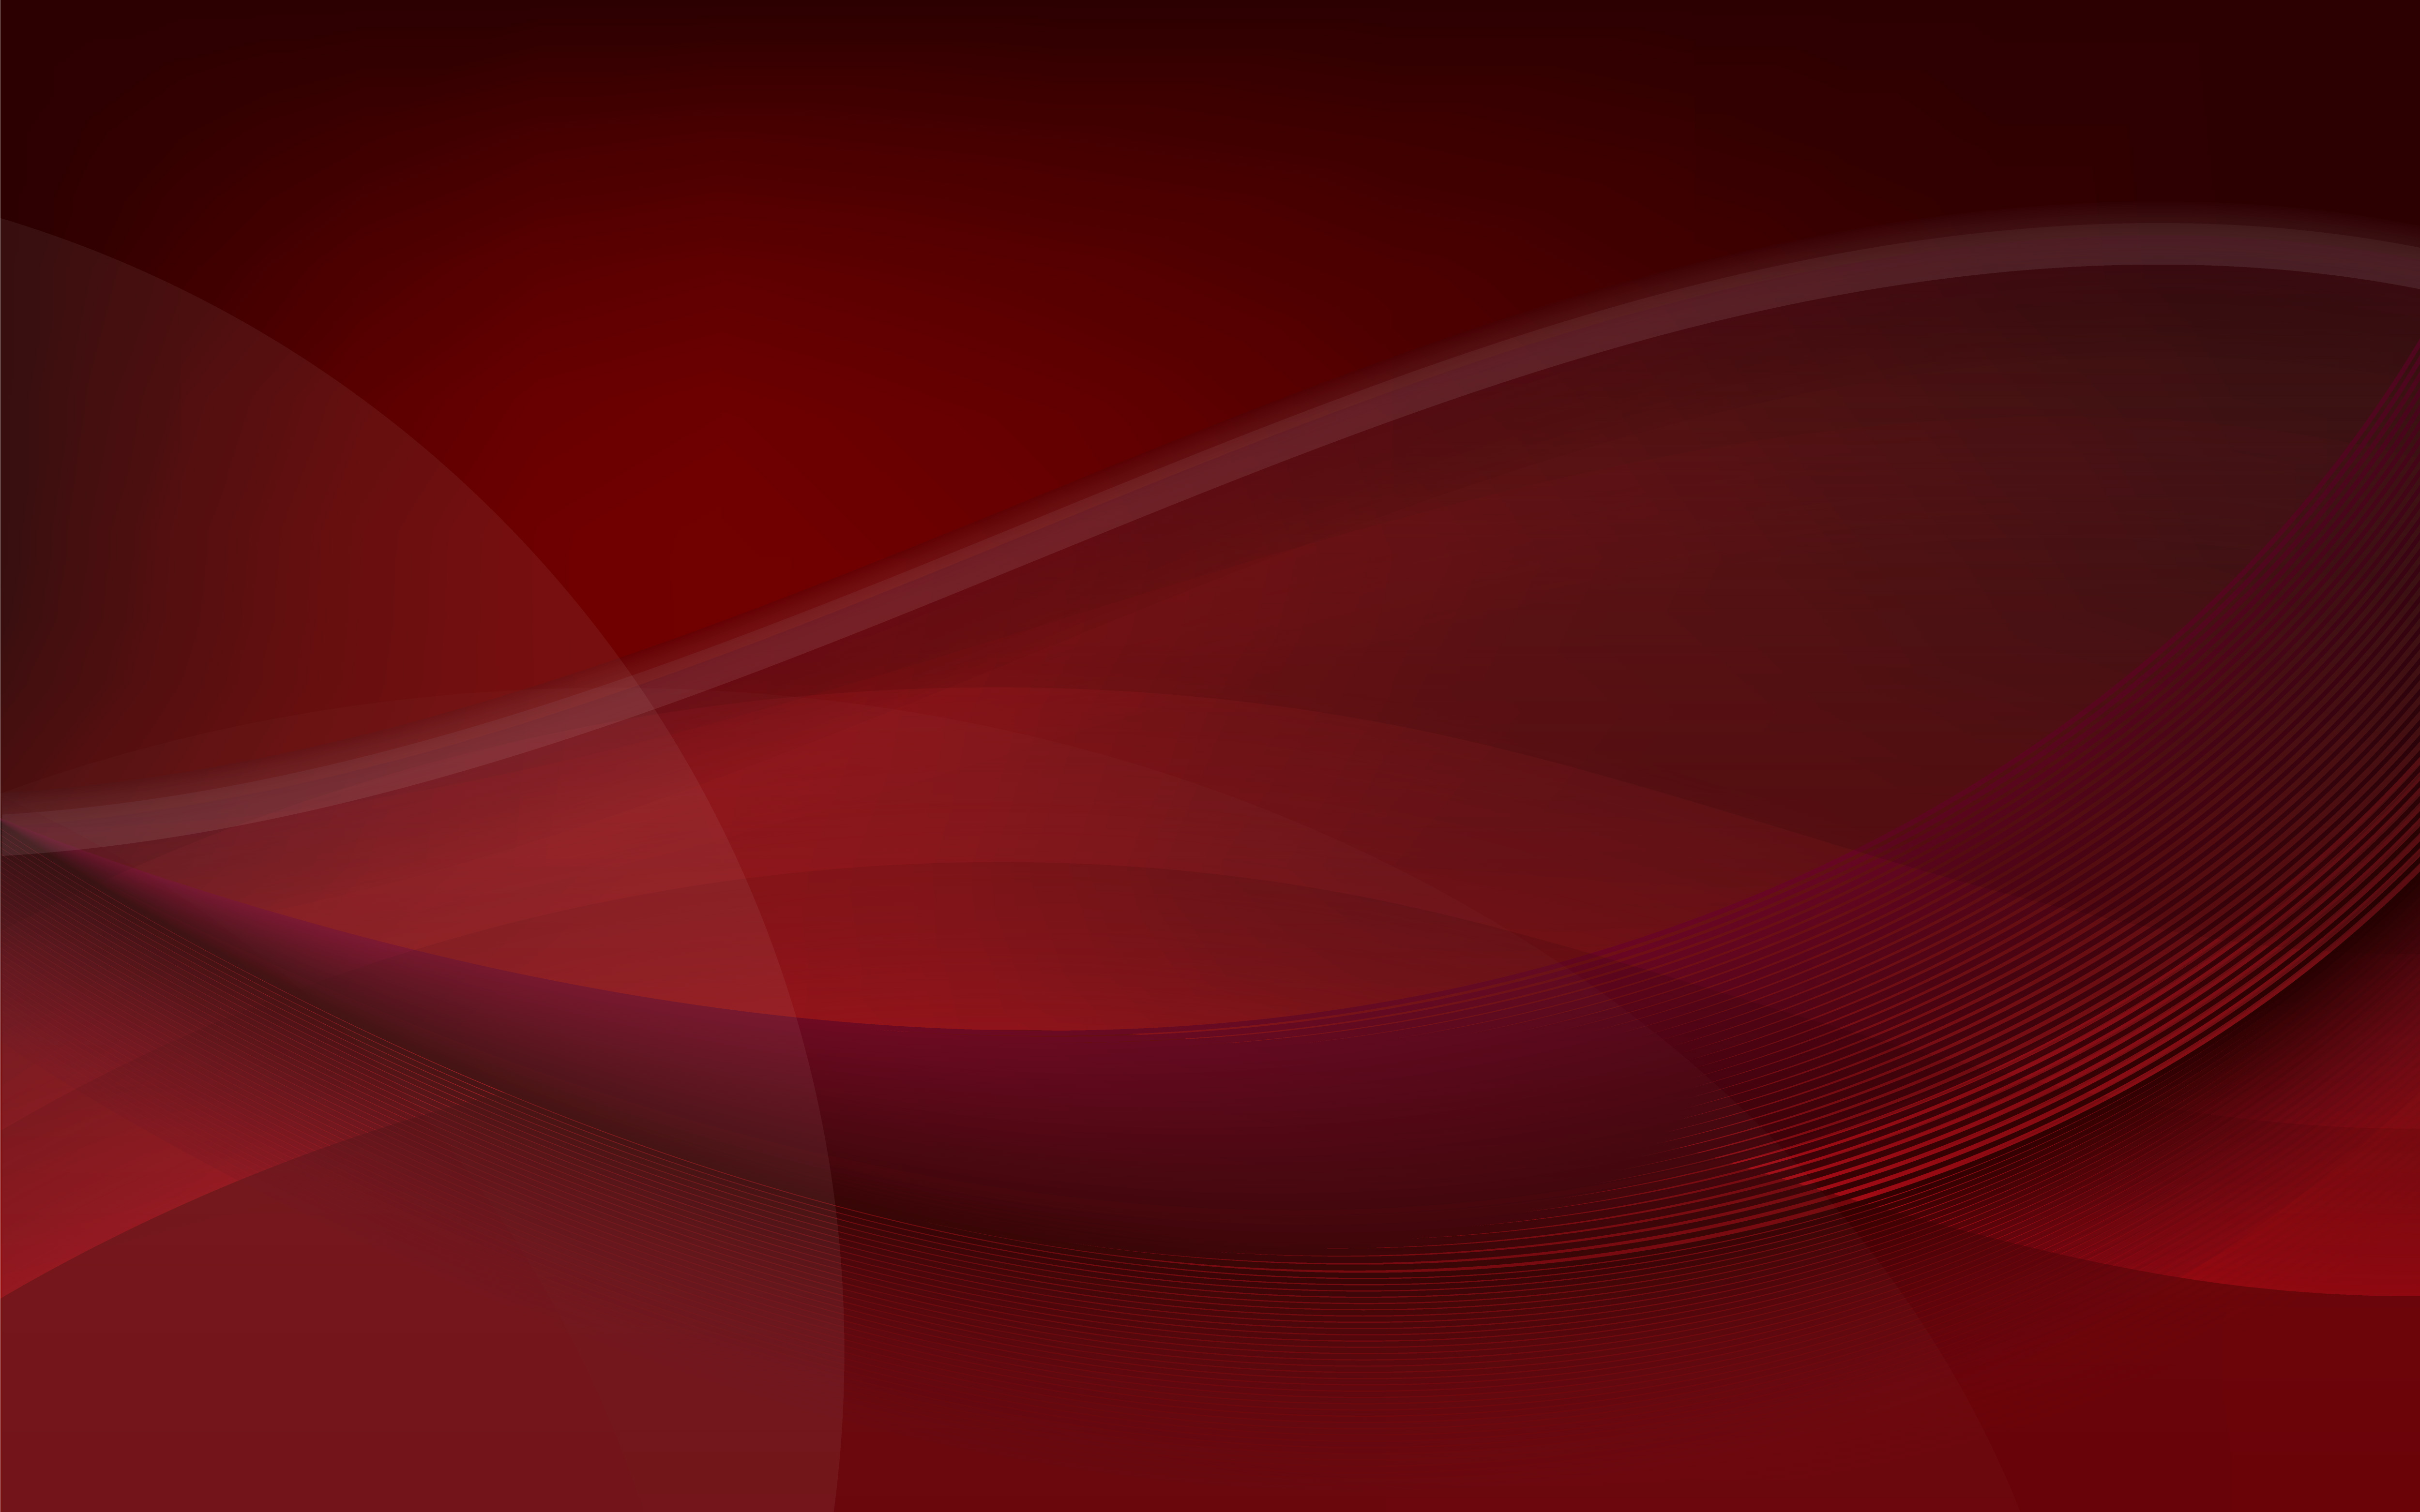 Red Background With Gradient And Blend Business Style Or